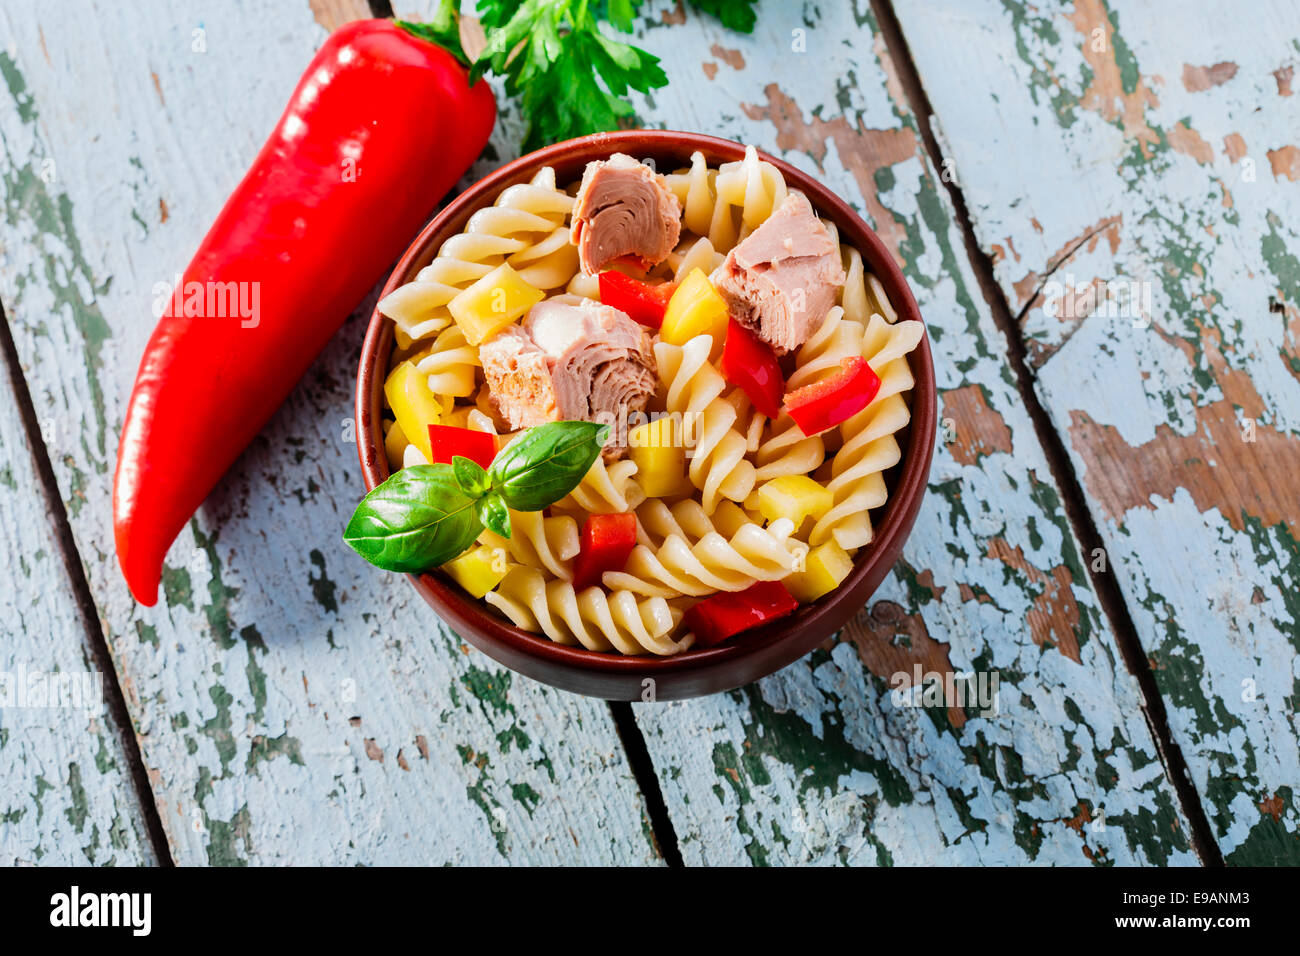 Pasta salad with tuna and pepper - Stock Image